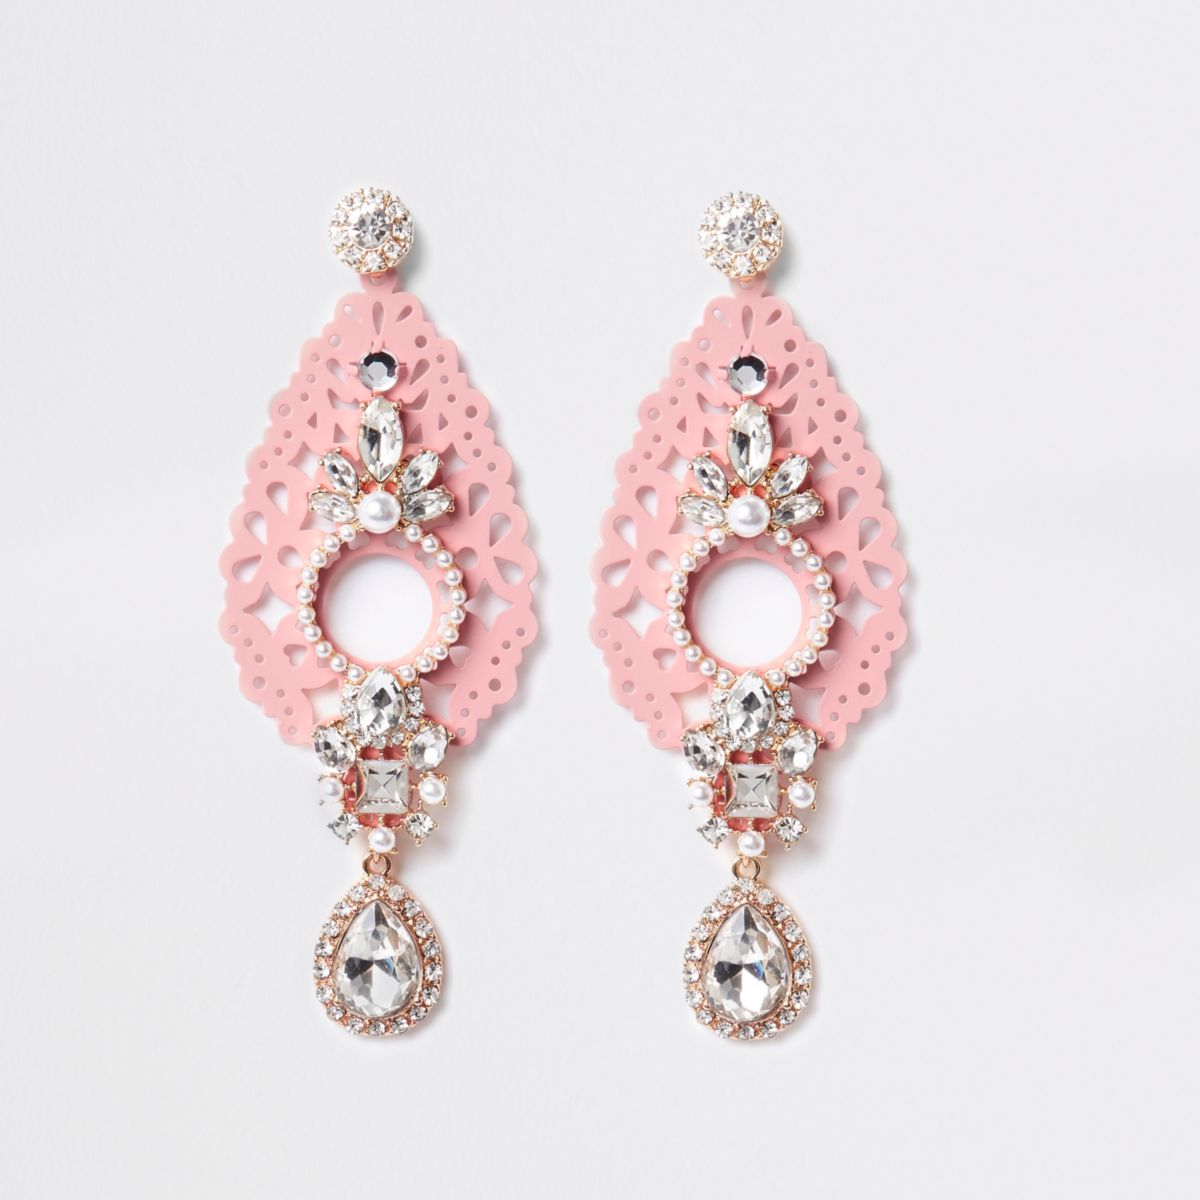 Pink gold tone filigree drop earrings